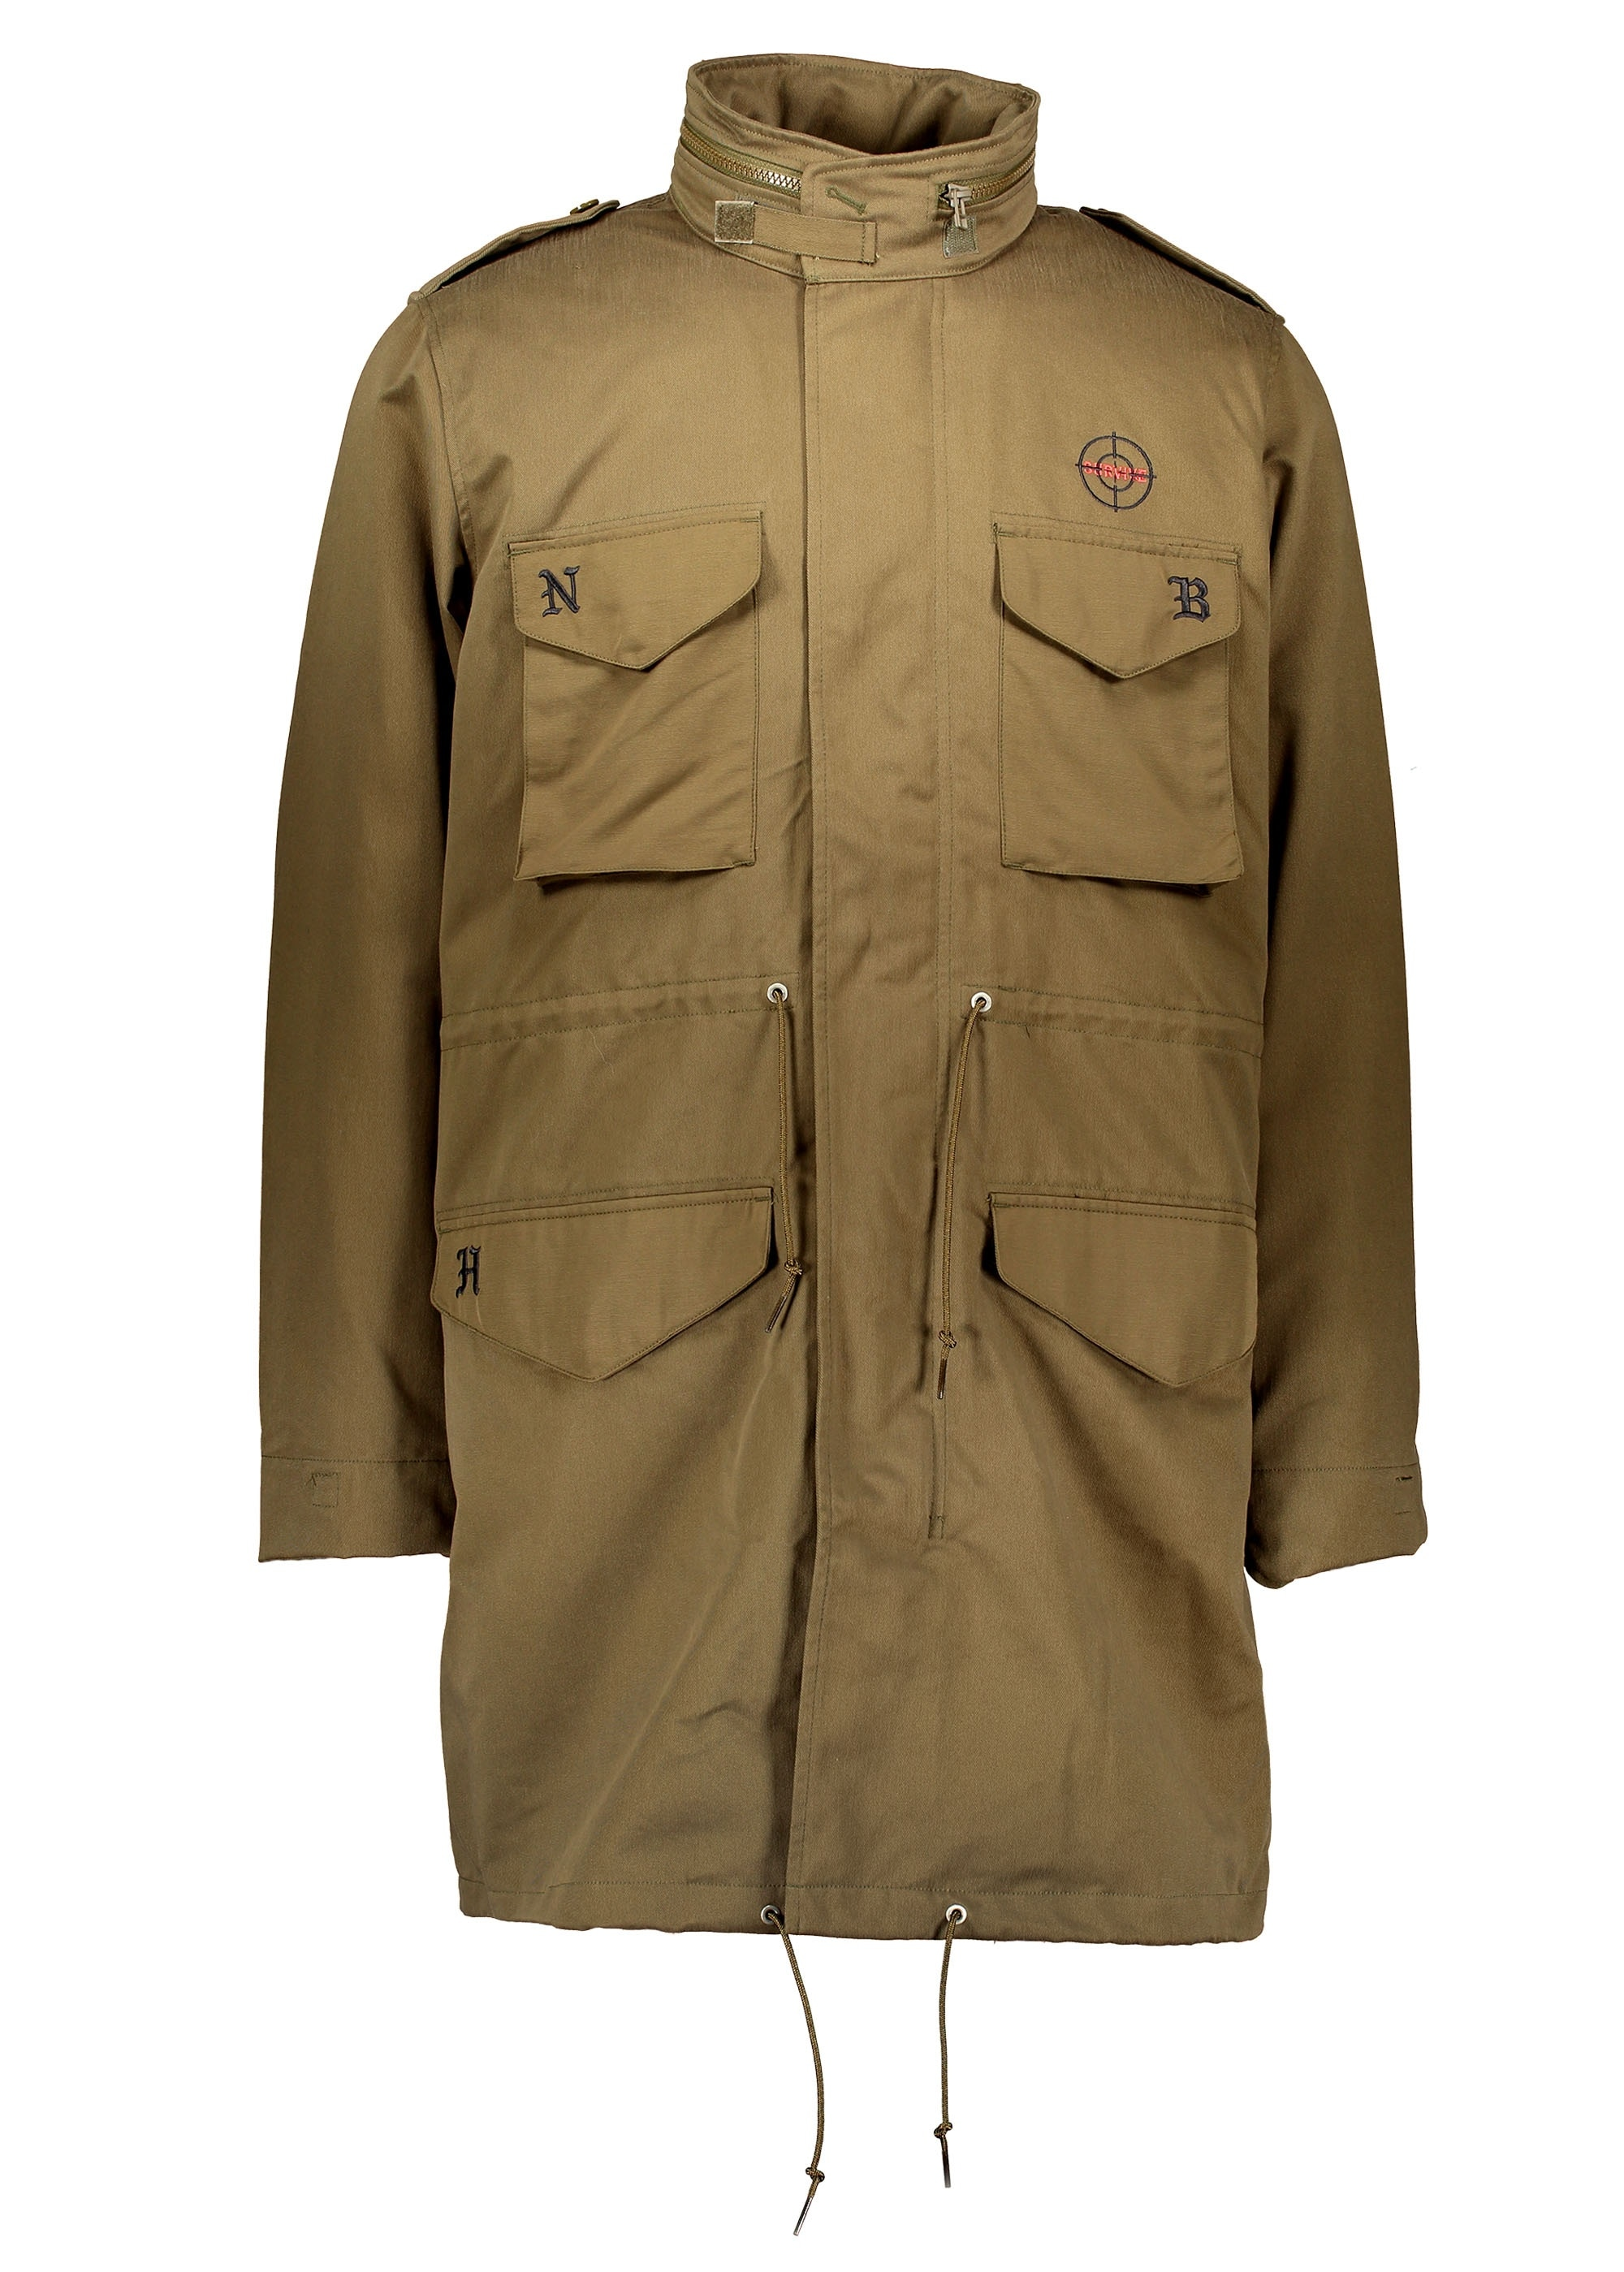 d6d134e6a645 adidas Originals by Neighborhood NH M65 Jacket - Trace Olive ...